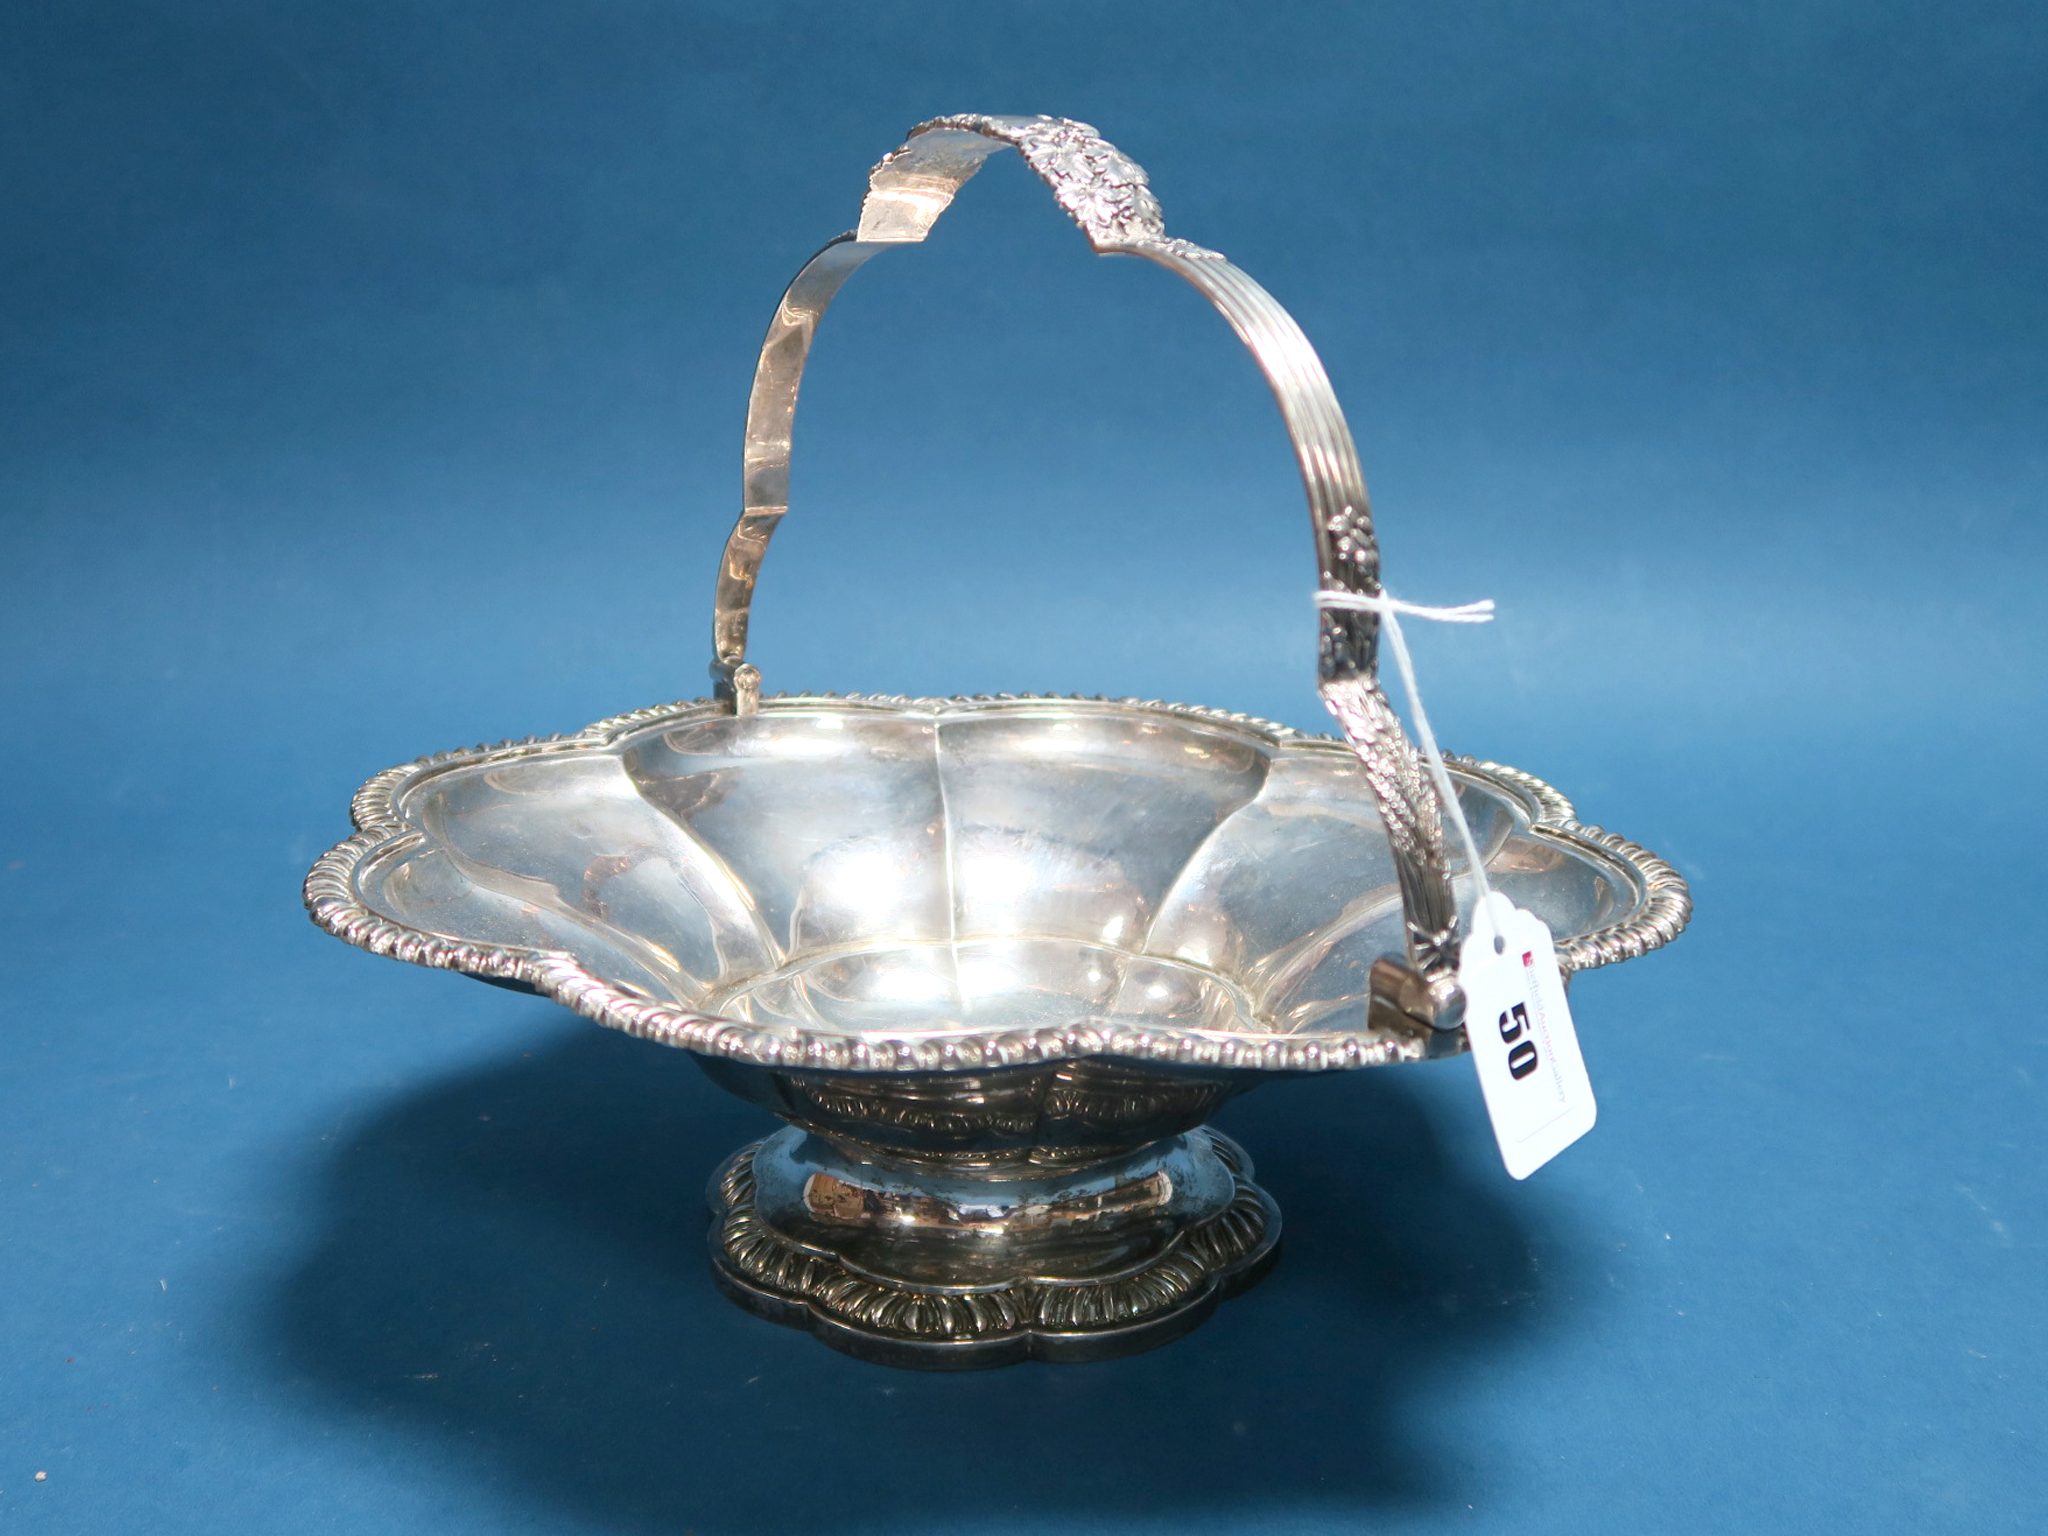 Lot 50 - A Large Georgian Hallmarked Silver Swing Handled Basket Dish, (makers mark rubbed) London 1820, of